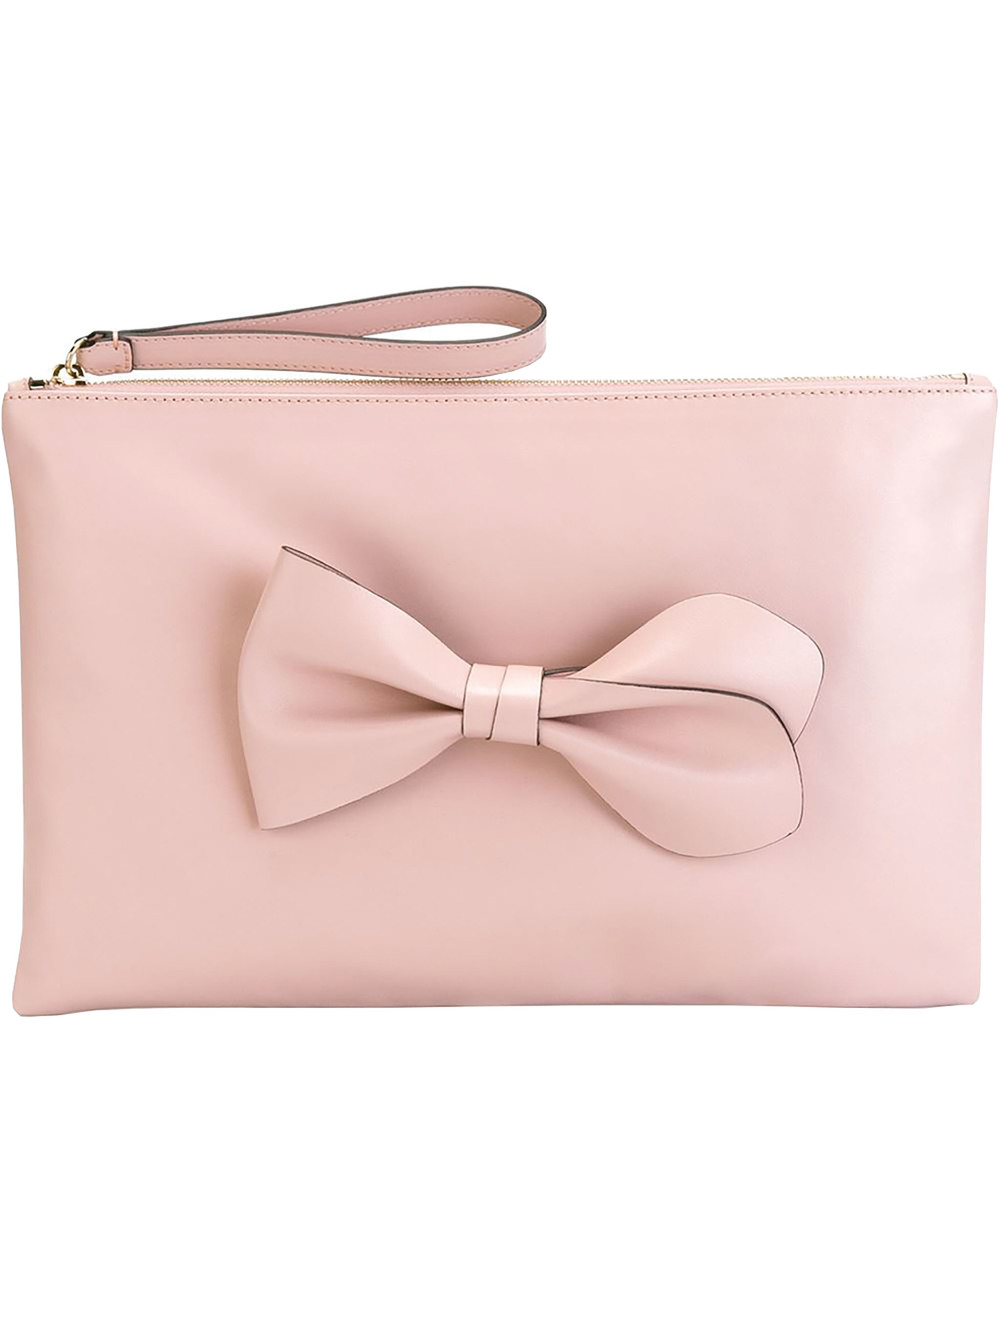 Red Valentino Bow Appliqué Clutch $516